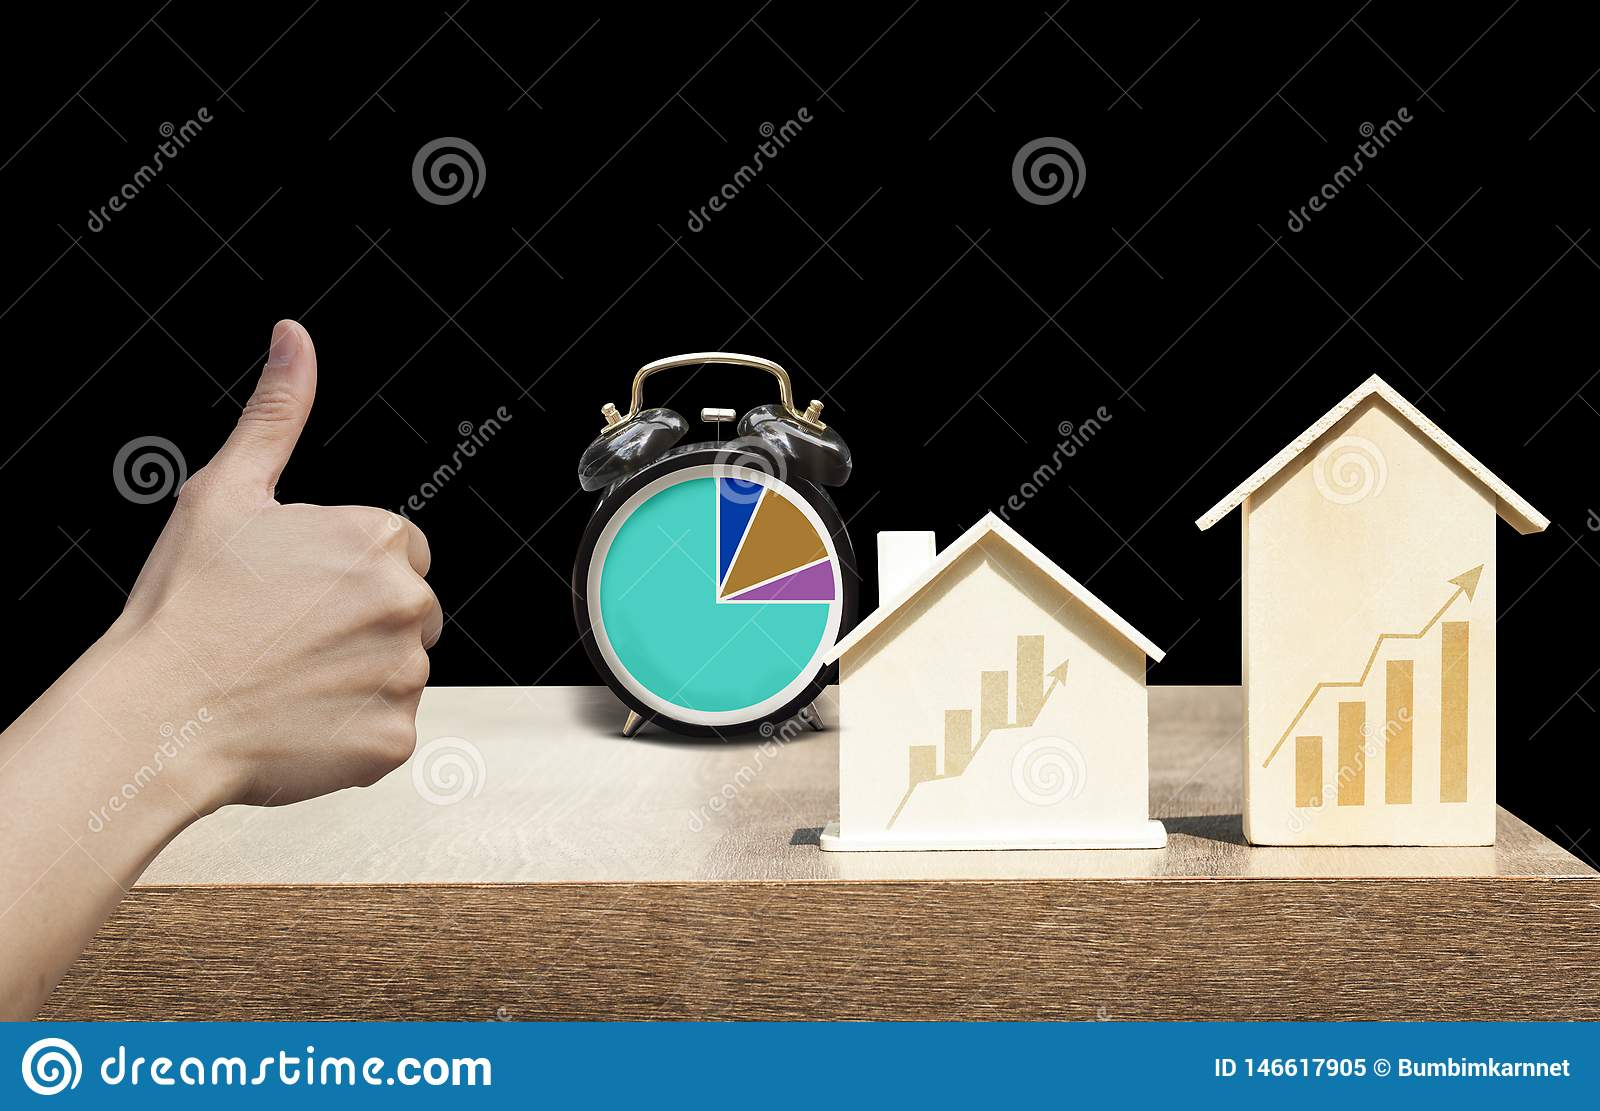 Investing in properties that have good returns in a short period of time